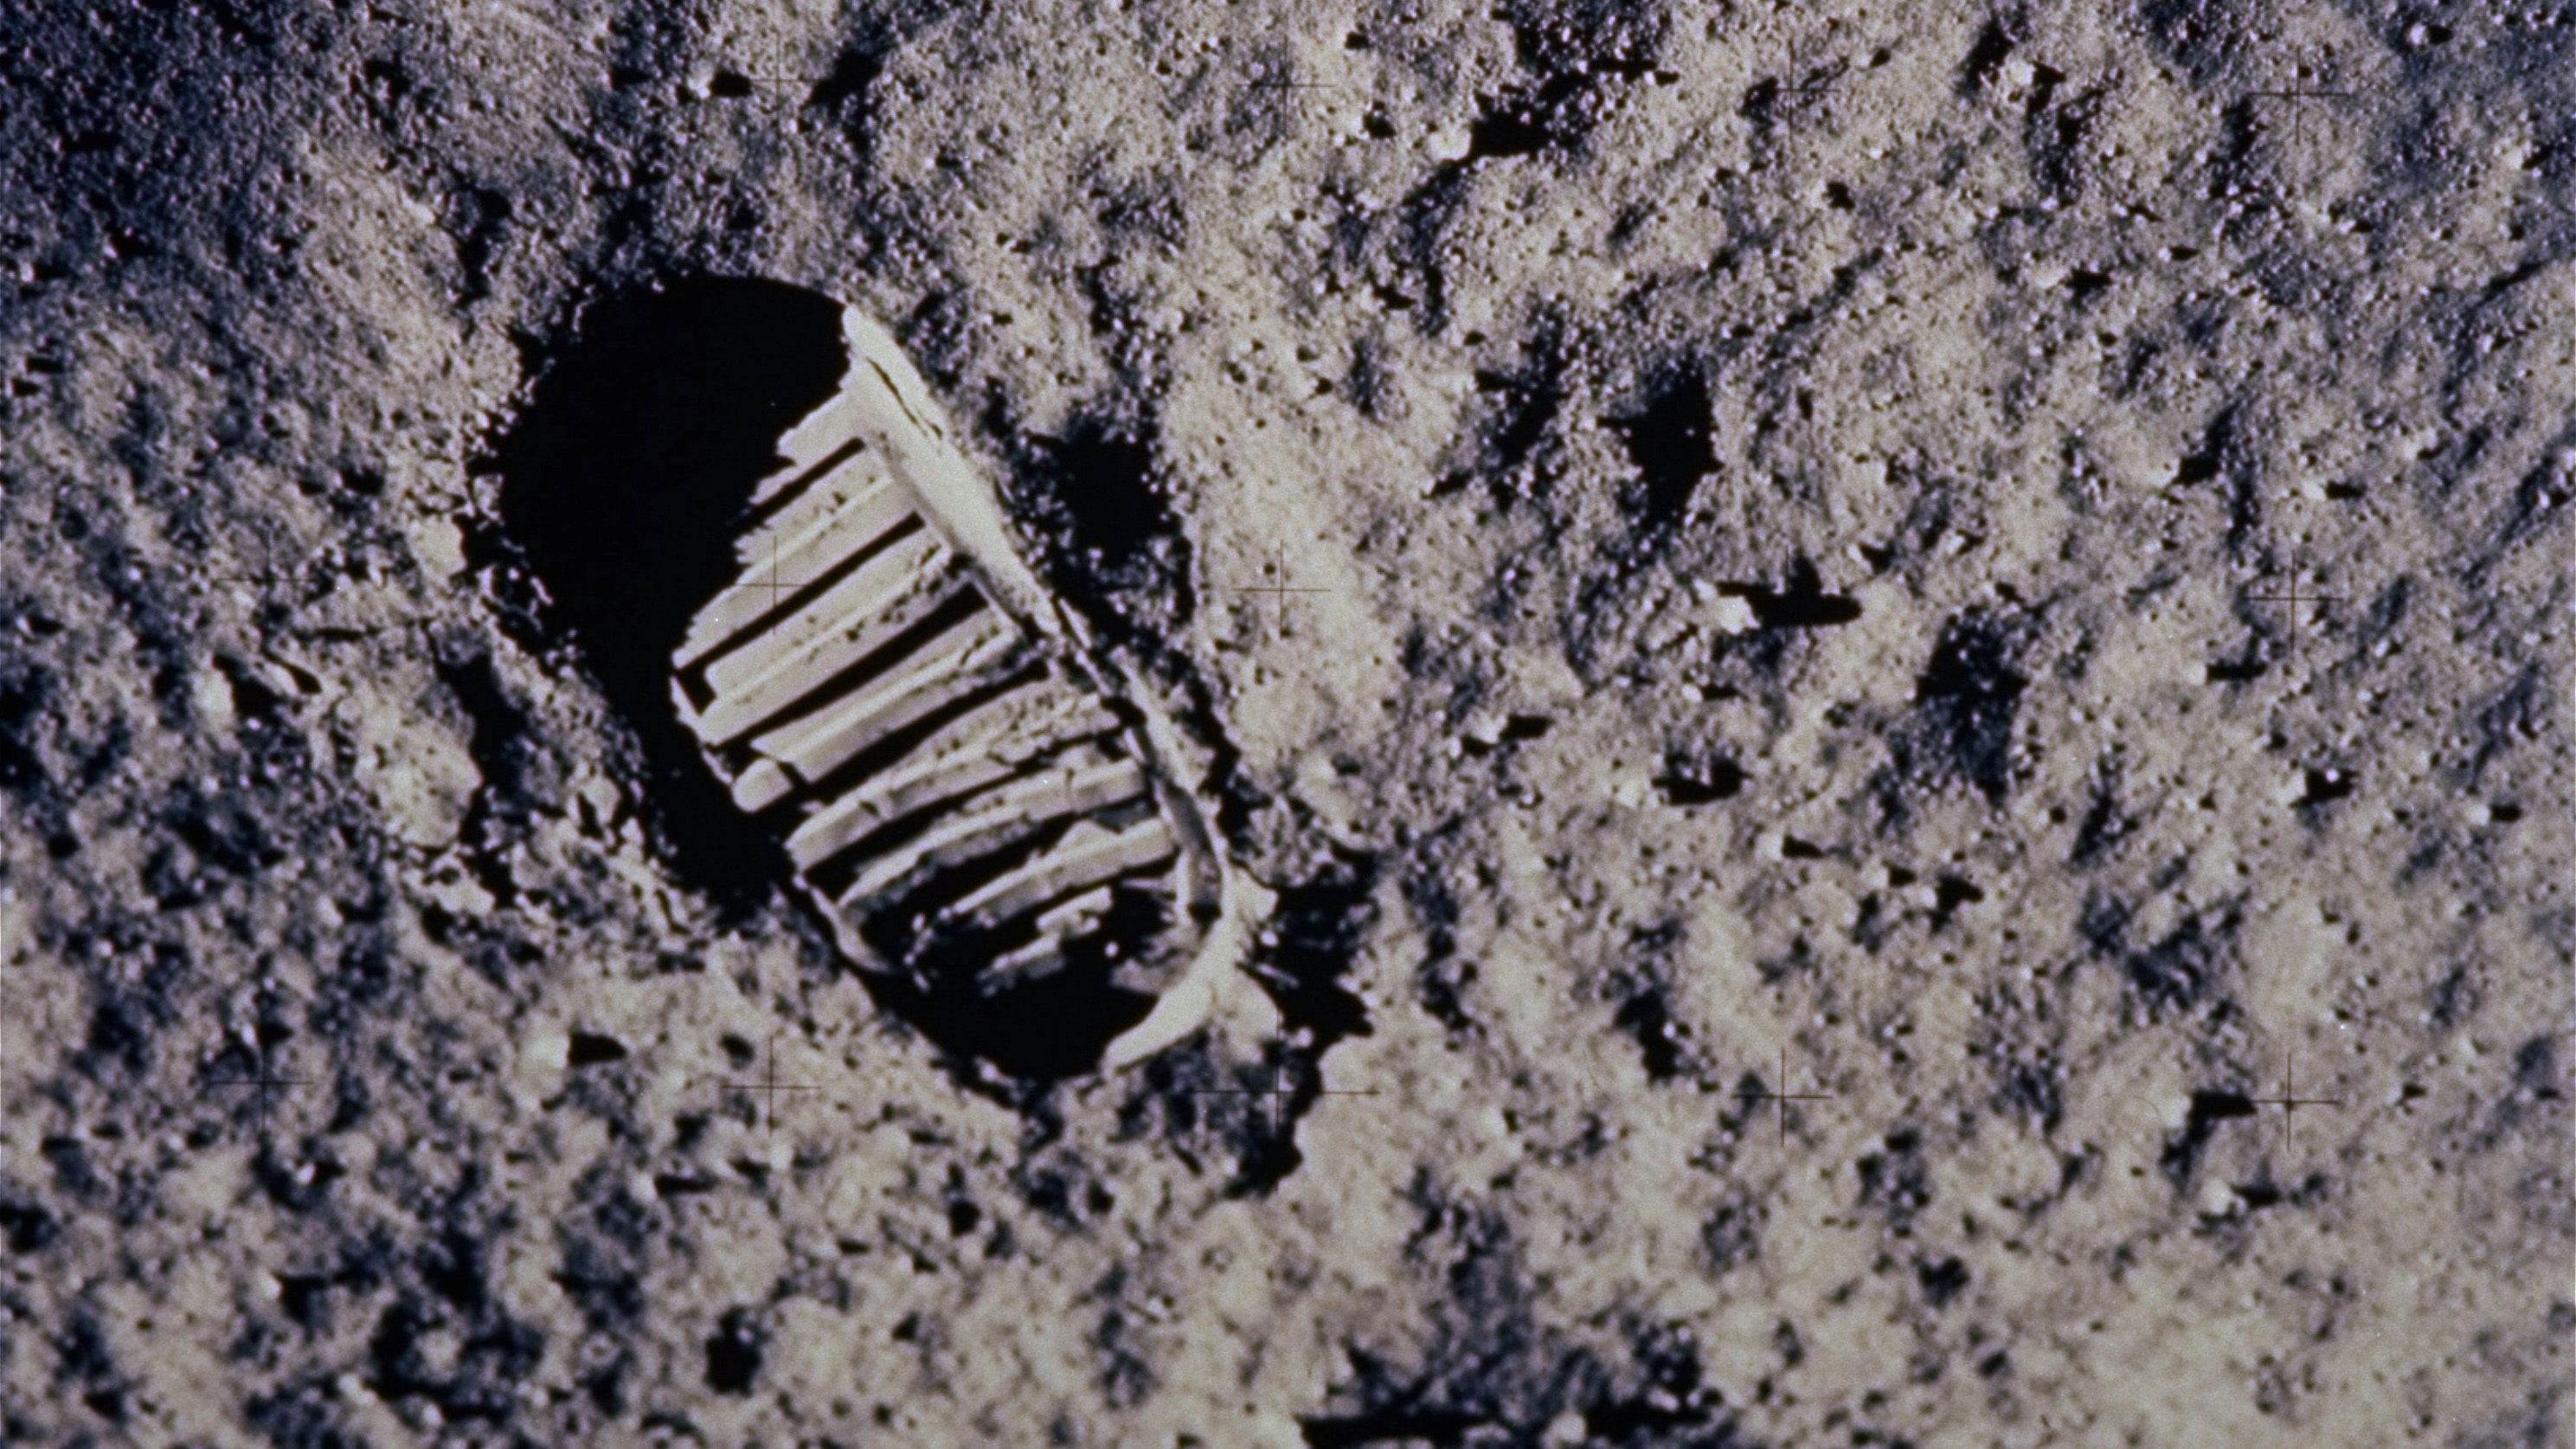 "A footprint left by one of the astronauts of the Apollo 11 mission shows in the soft, powder surface of the moon on July 20, 1969. Commander Neil A. Armstrong and Air Force Col. Edwin E. ""Buzz"" Aldrin Jr. became the first men to walk on the moon after blastoff from Cape Kennedy, Fla., on July 16, 1969. They headed back home from the lunar surface on July 21, 1969. The end of man's first voyage to another planet ended with a splashdown 950 miles southwest of Hawaii, thus achieving President John F.Kennedy's challenge to land men on the moon before the end of the 1960s."